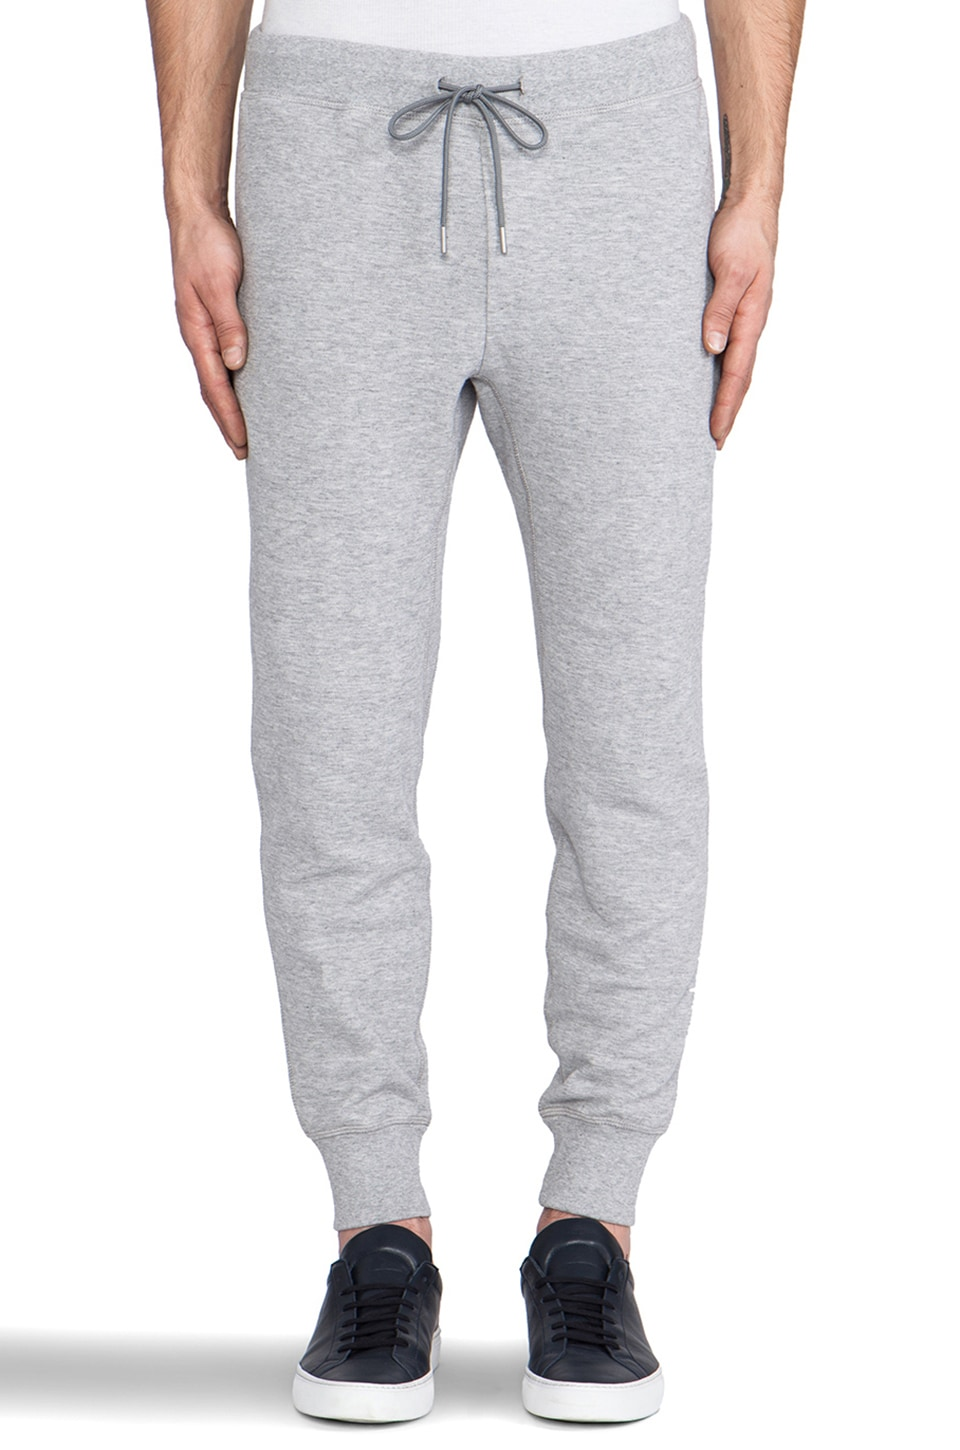 Theory Moris Sweatpant in Grey Heather